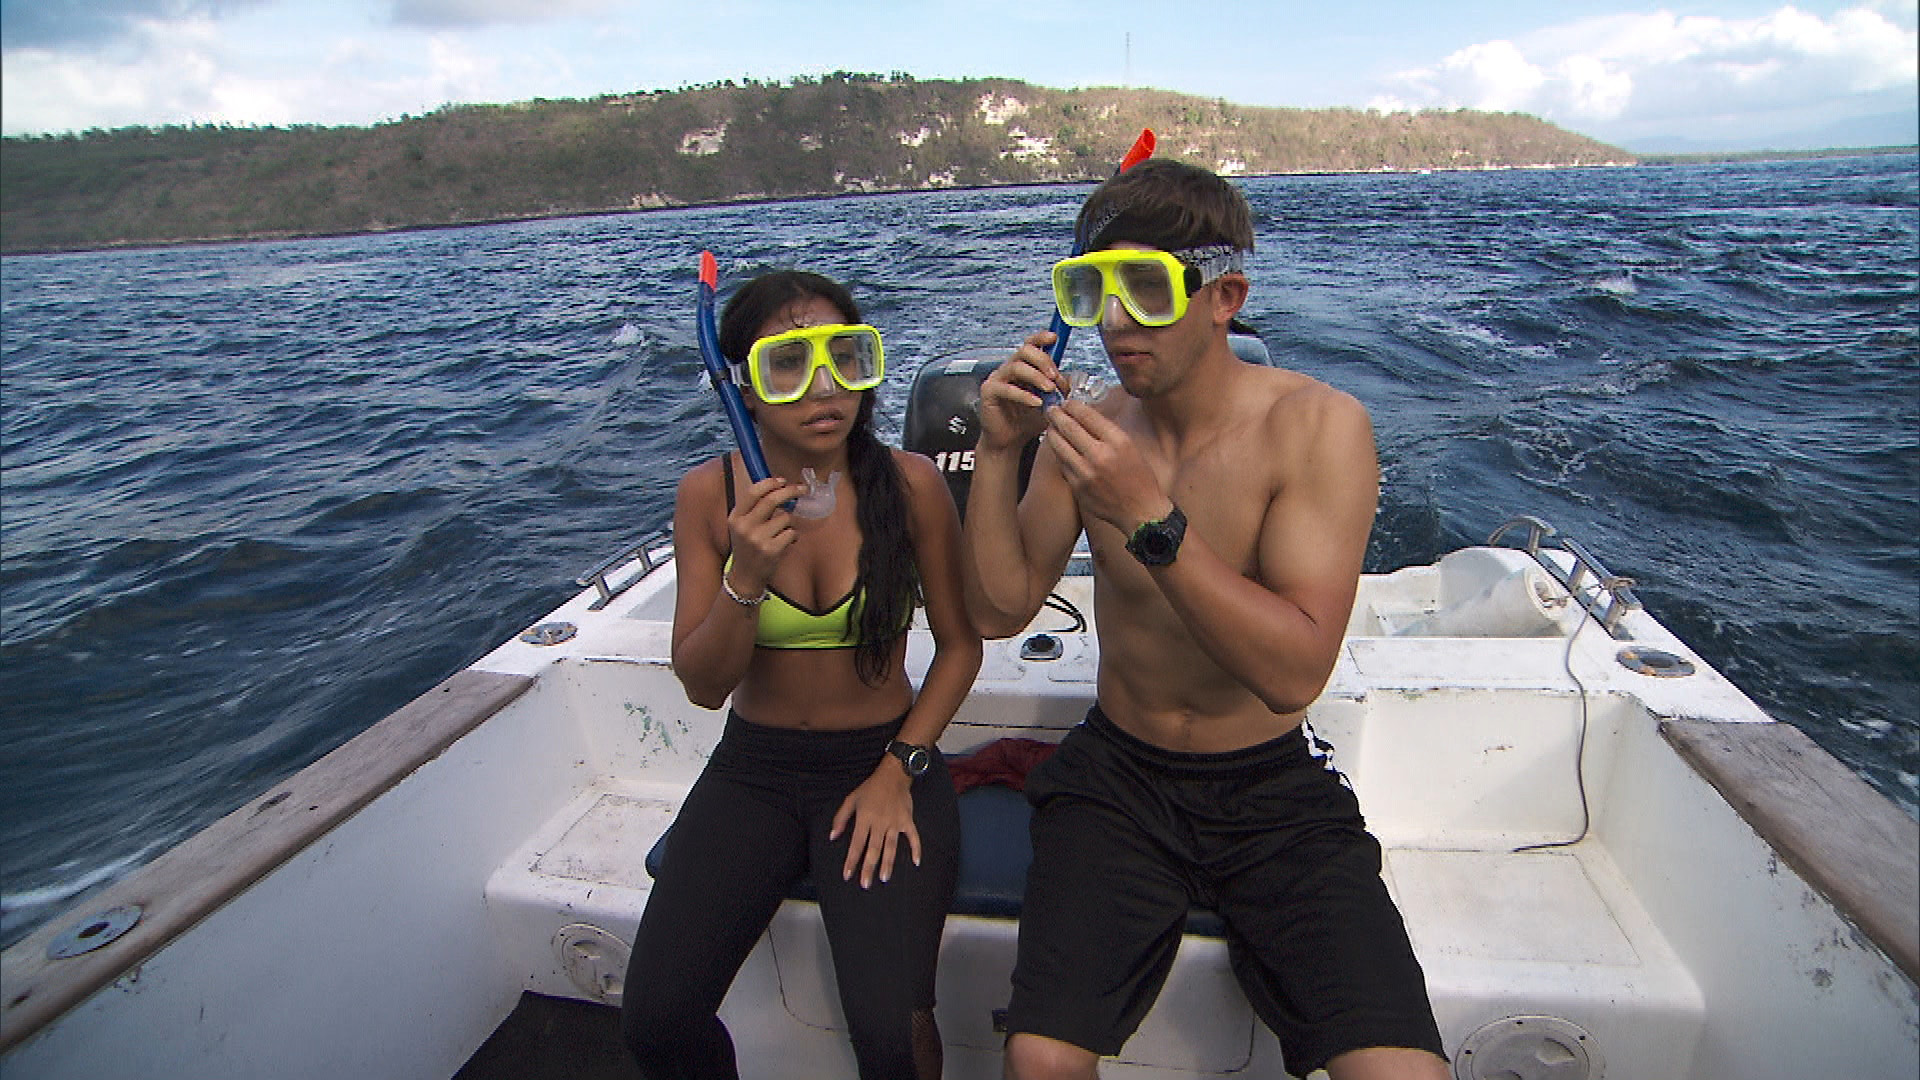 Dana and Matt strap into their snorkeling gear before searching for the next clue.